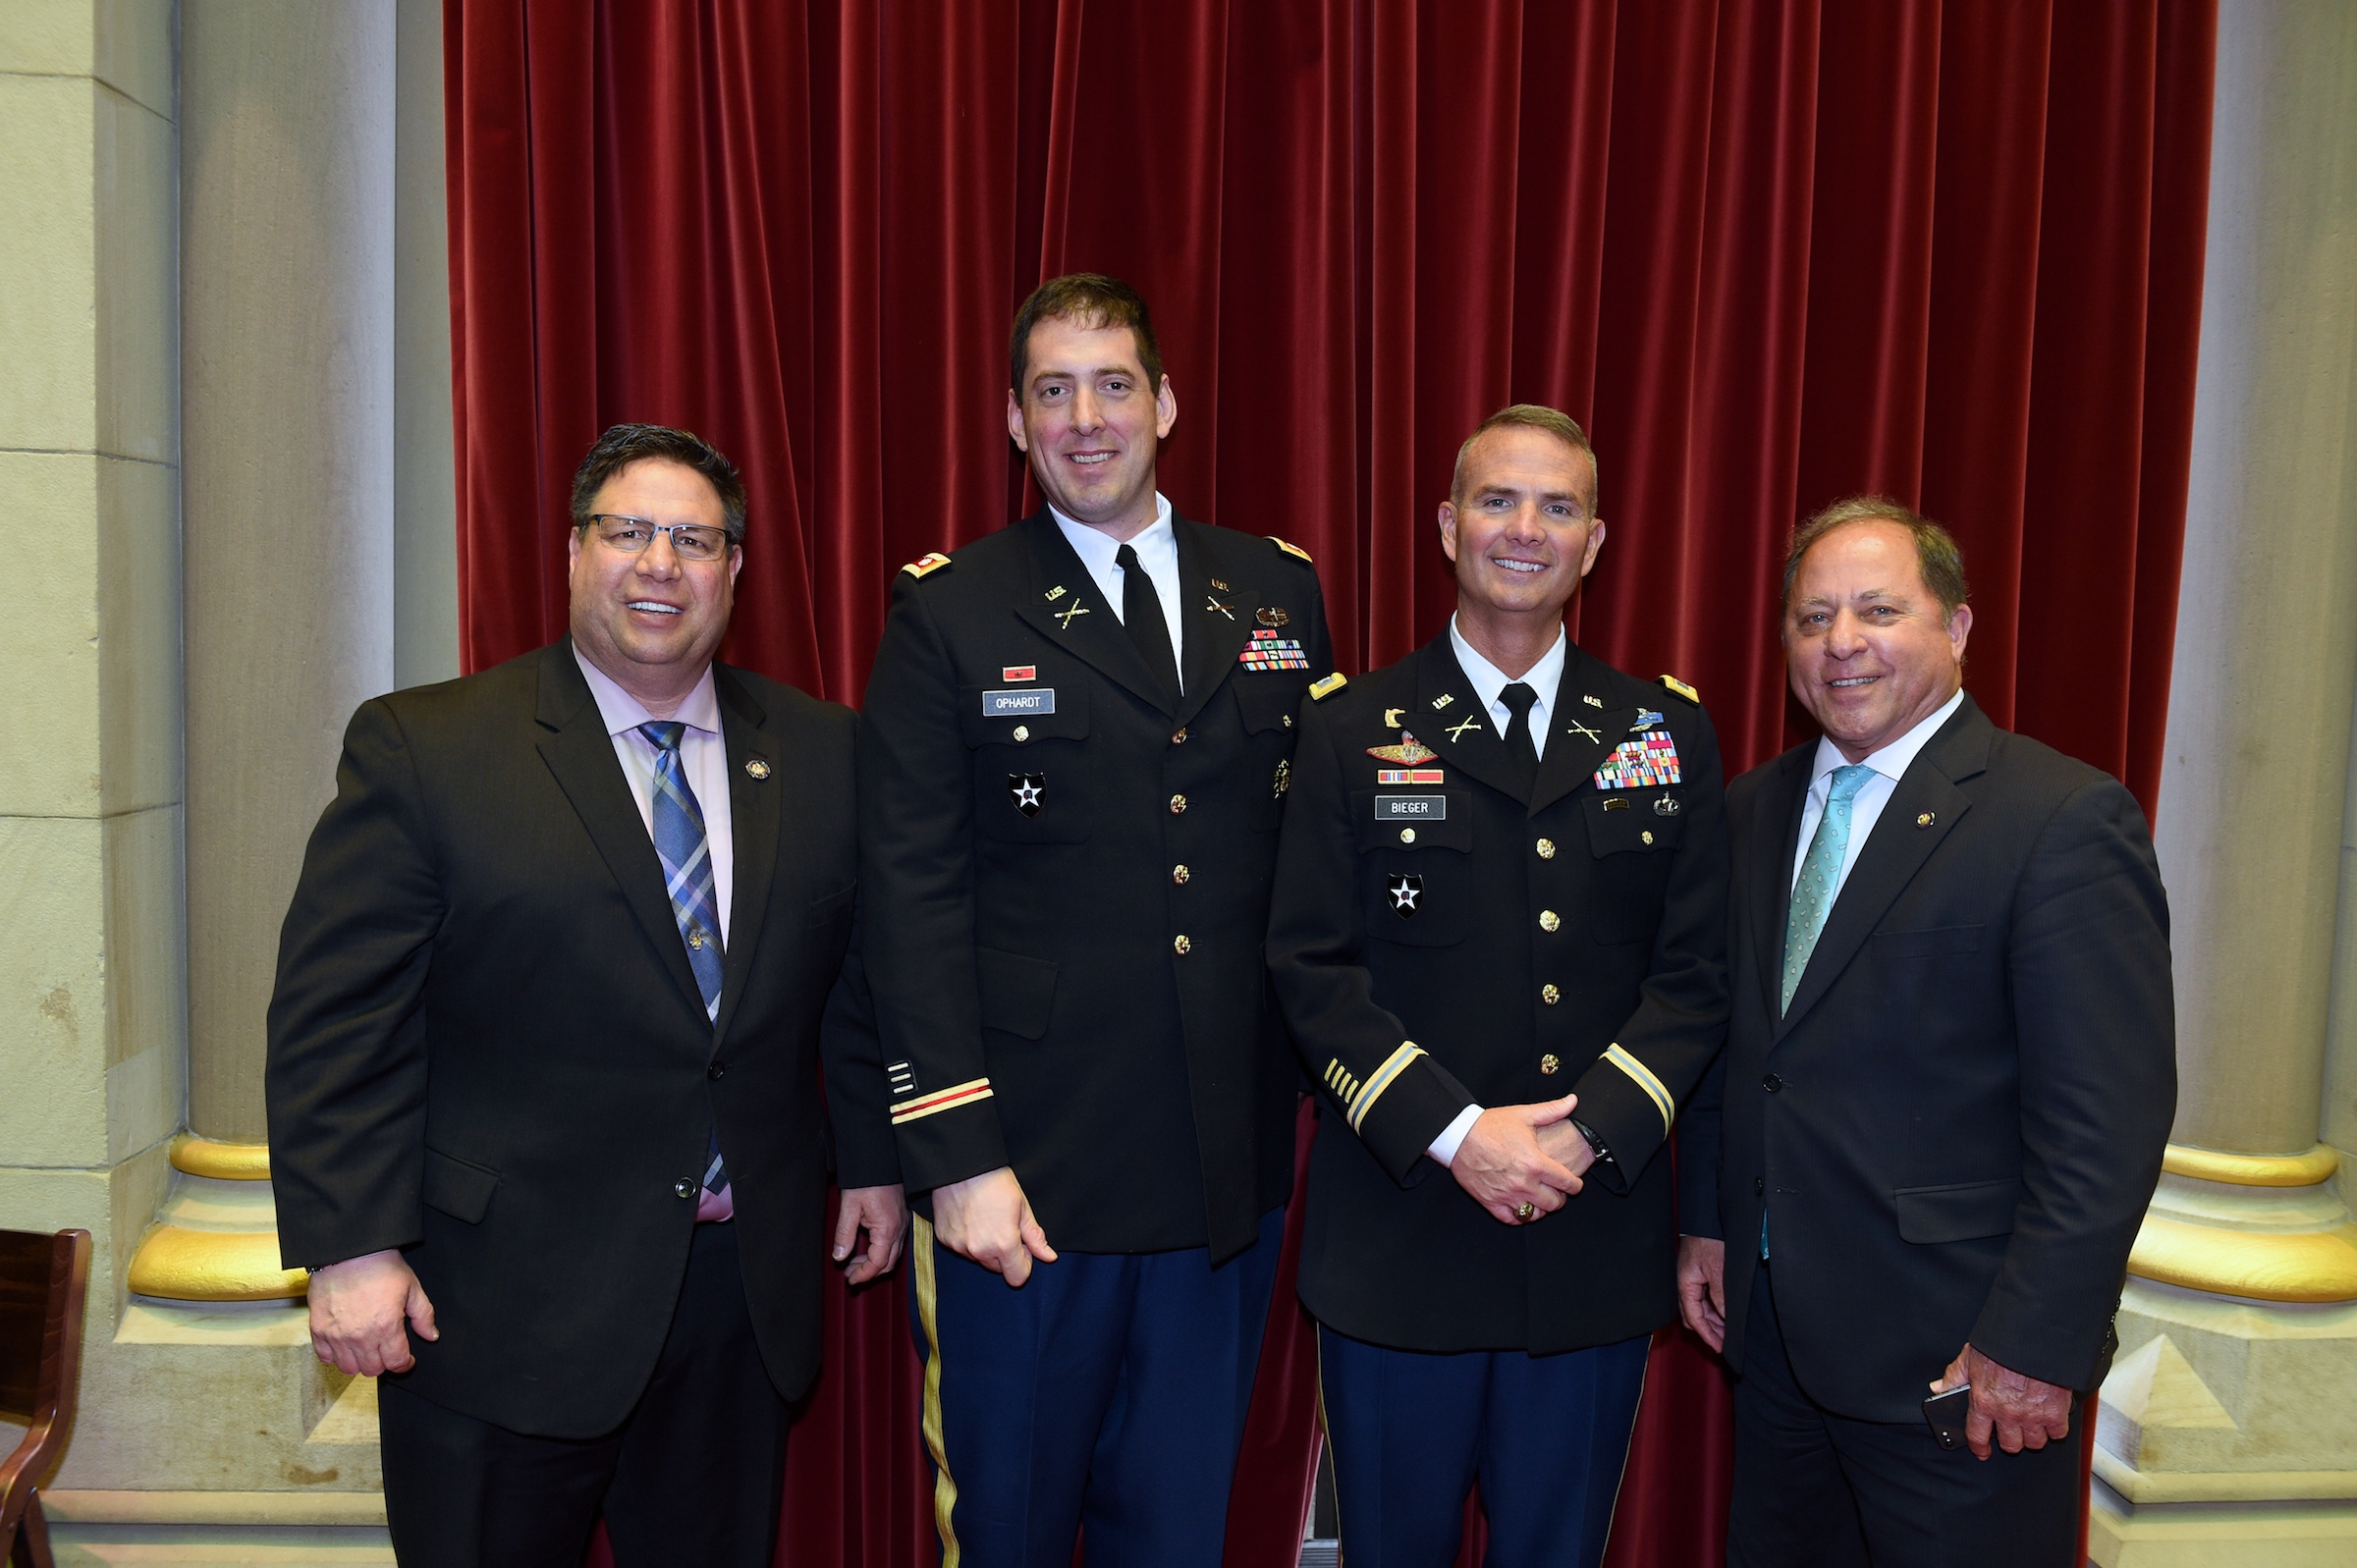 Assemblyman Steve Hawley (R,C,I-Batavia) [far right] poses with officers from West Point Academy in the Assembly Chamber on Wednesday, May 1.